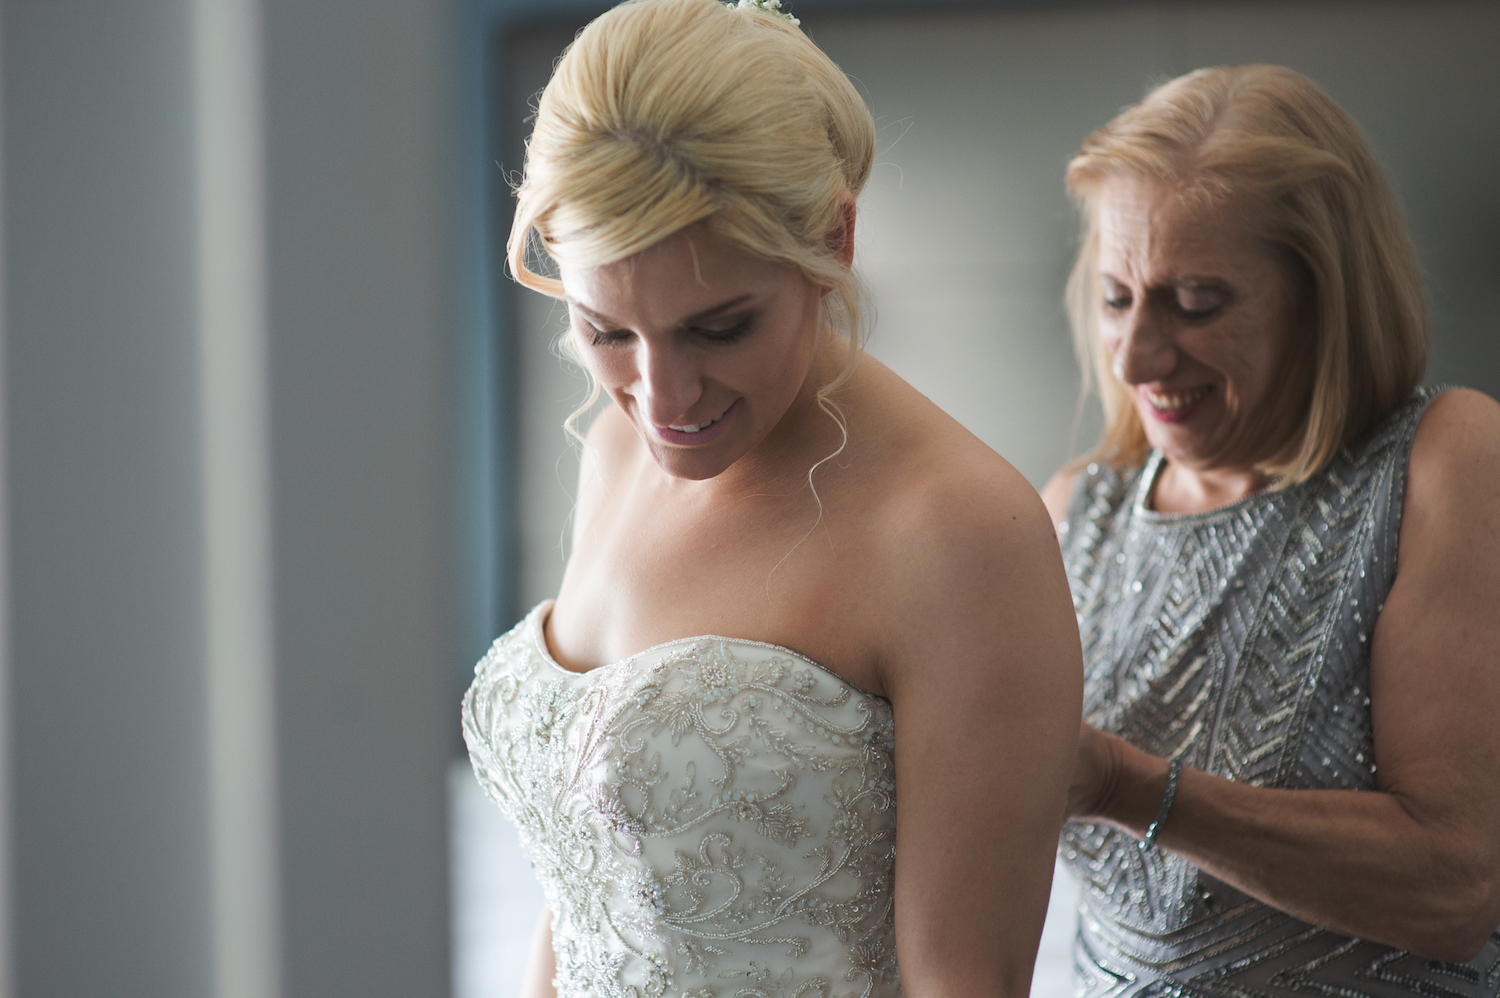 laura&mom-getting-ready-wedding-photography-nj